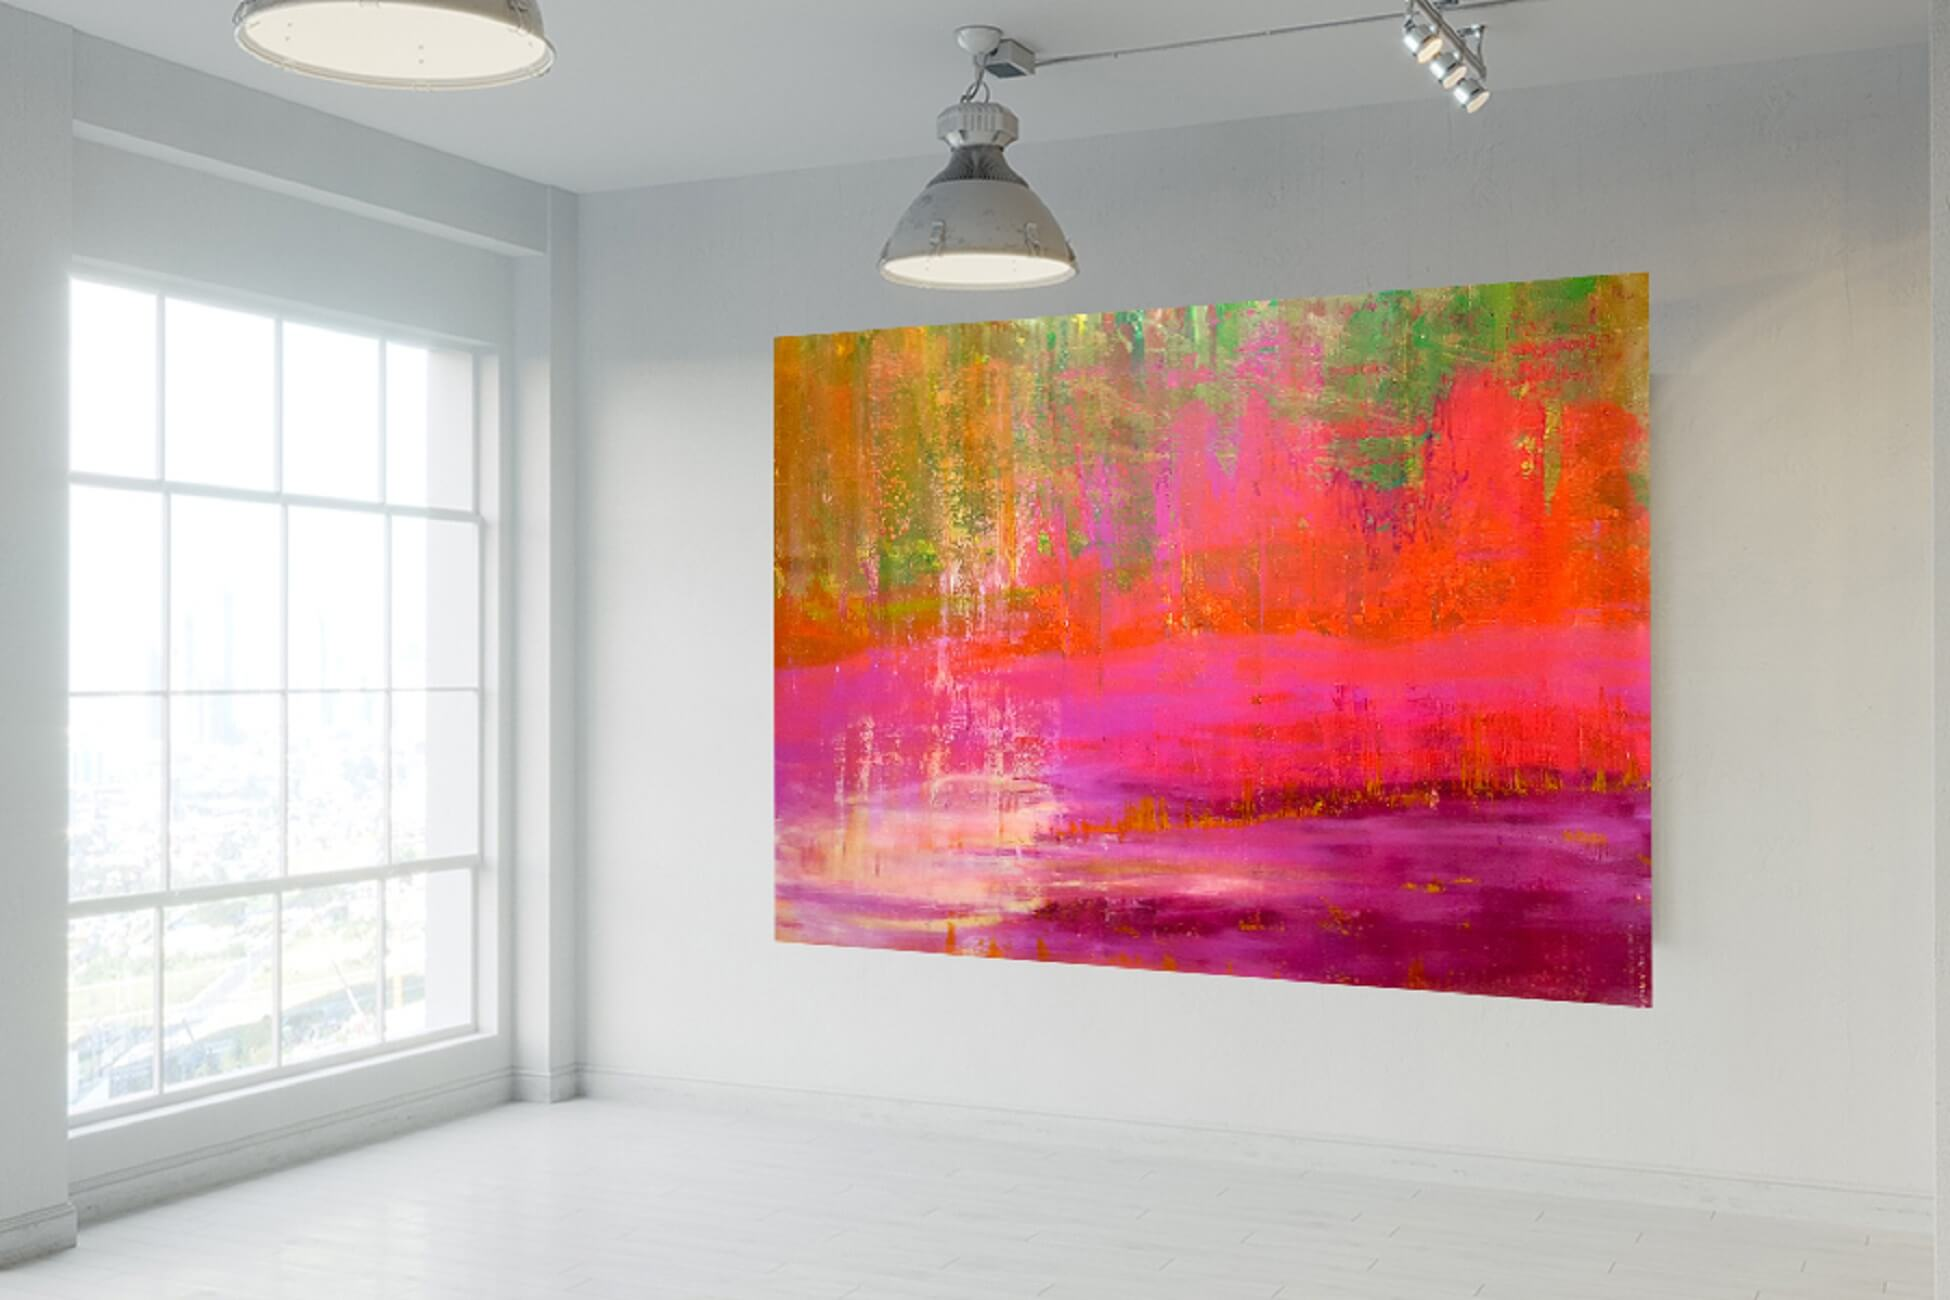 xxl painting, xxl abstract landscape